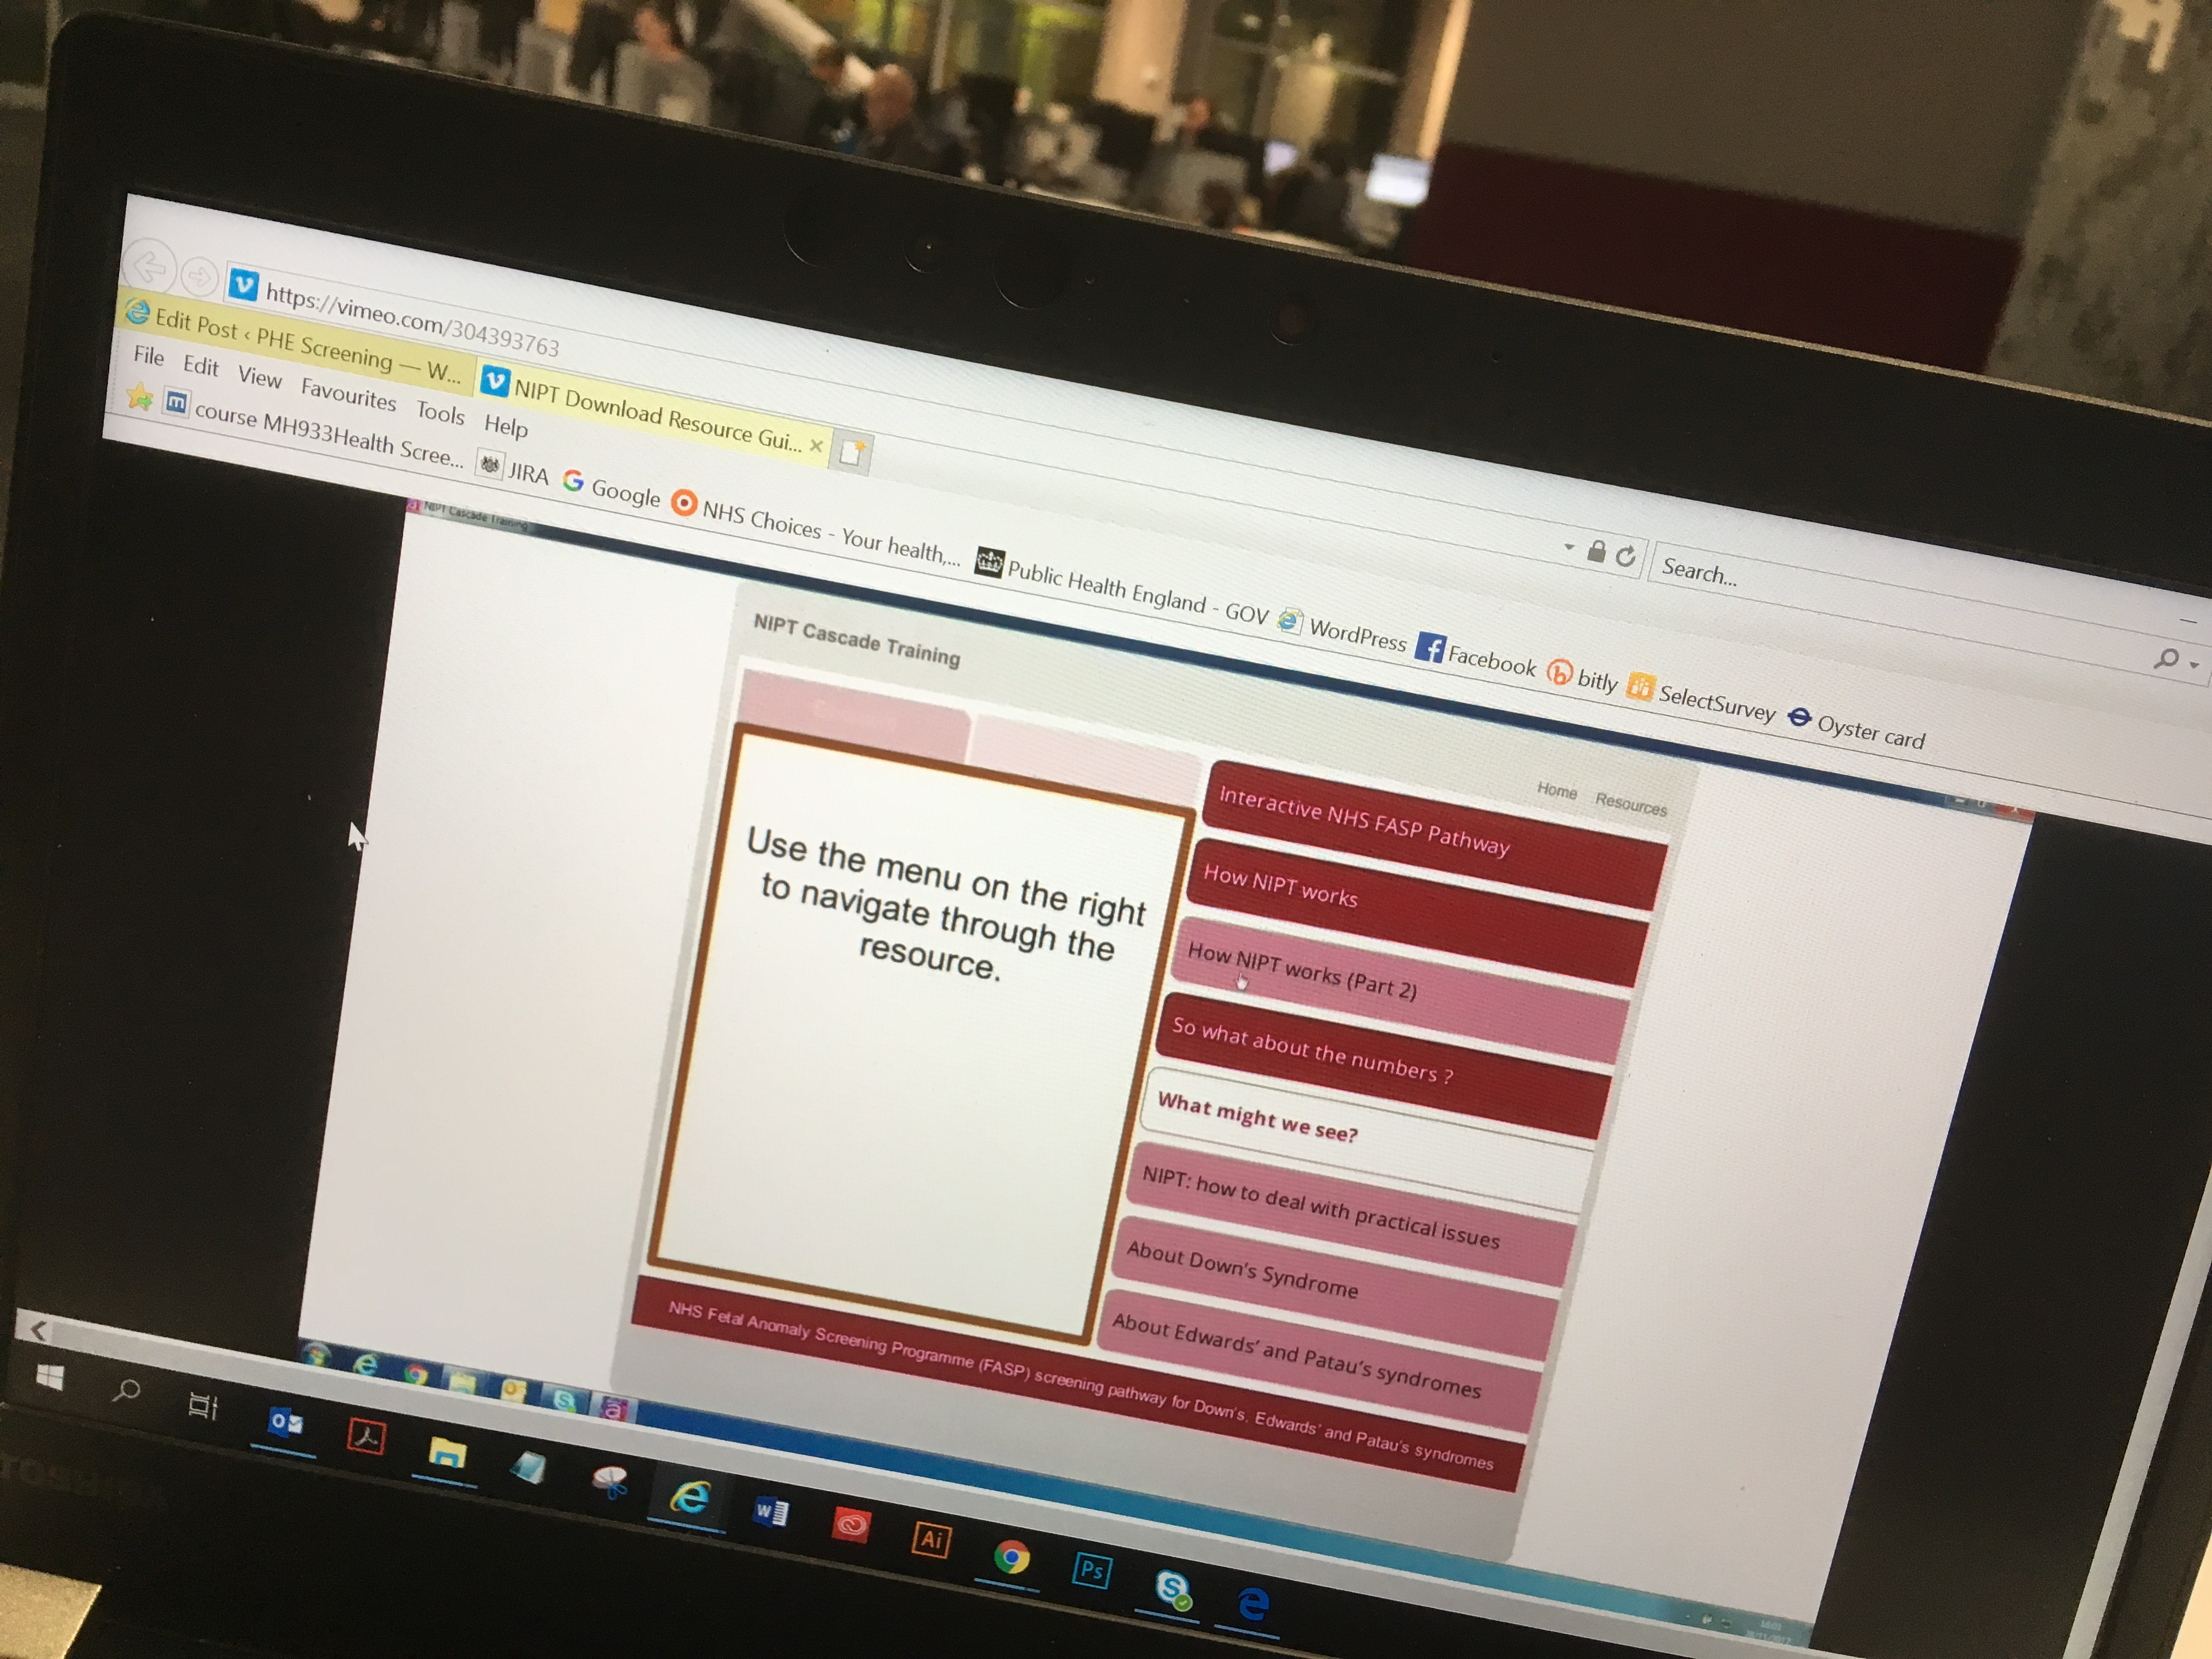 The photo shows the NIPT training resource displayed on a laptop.